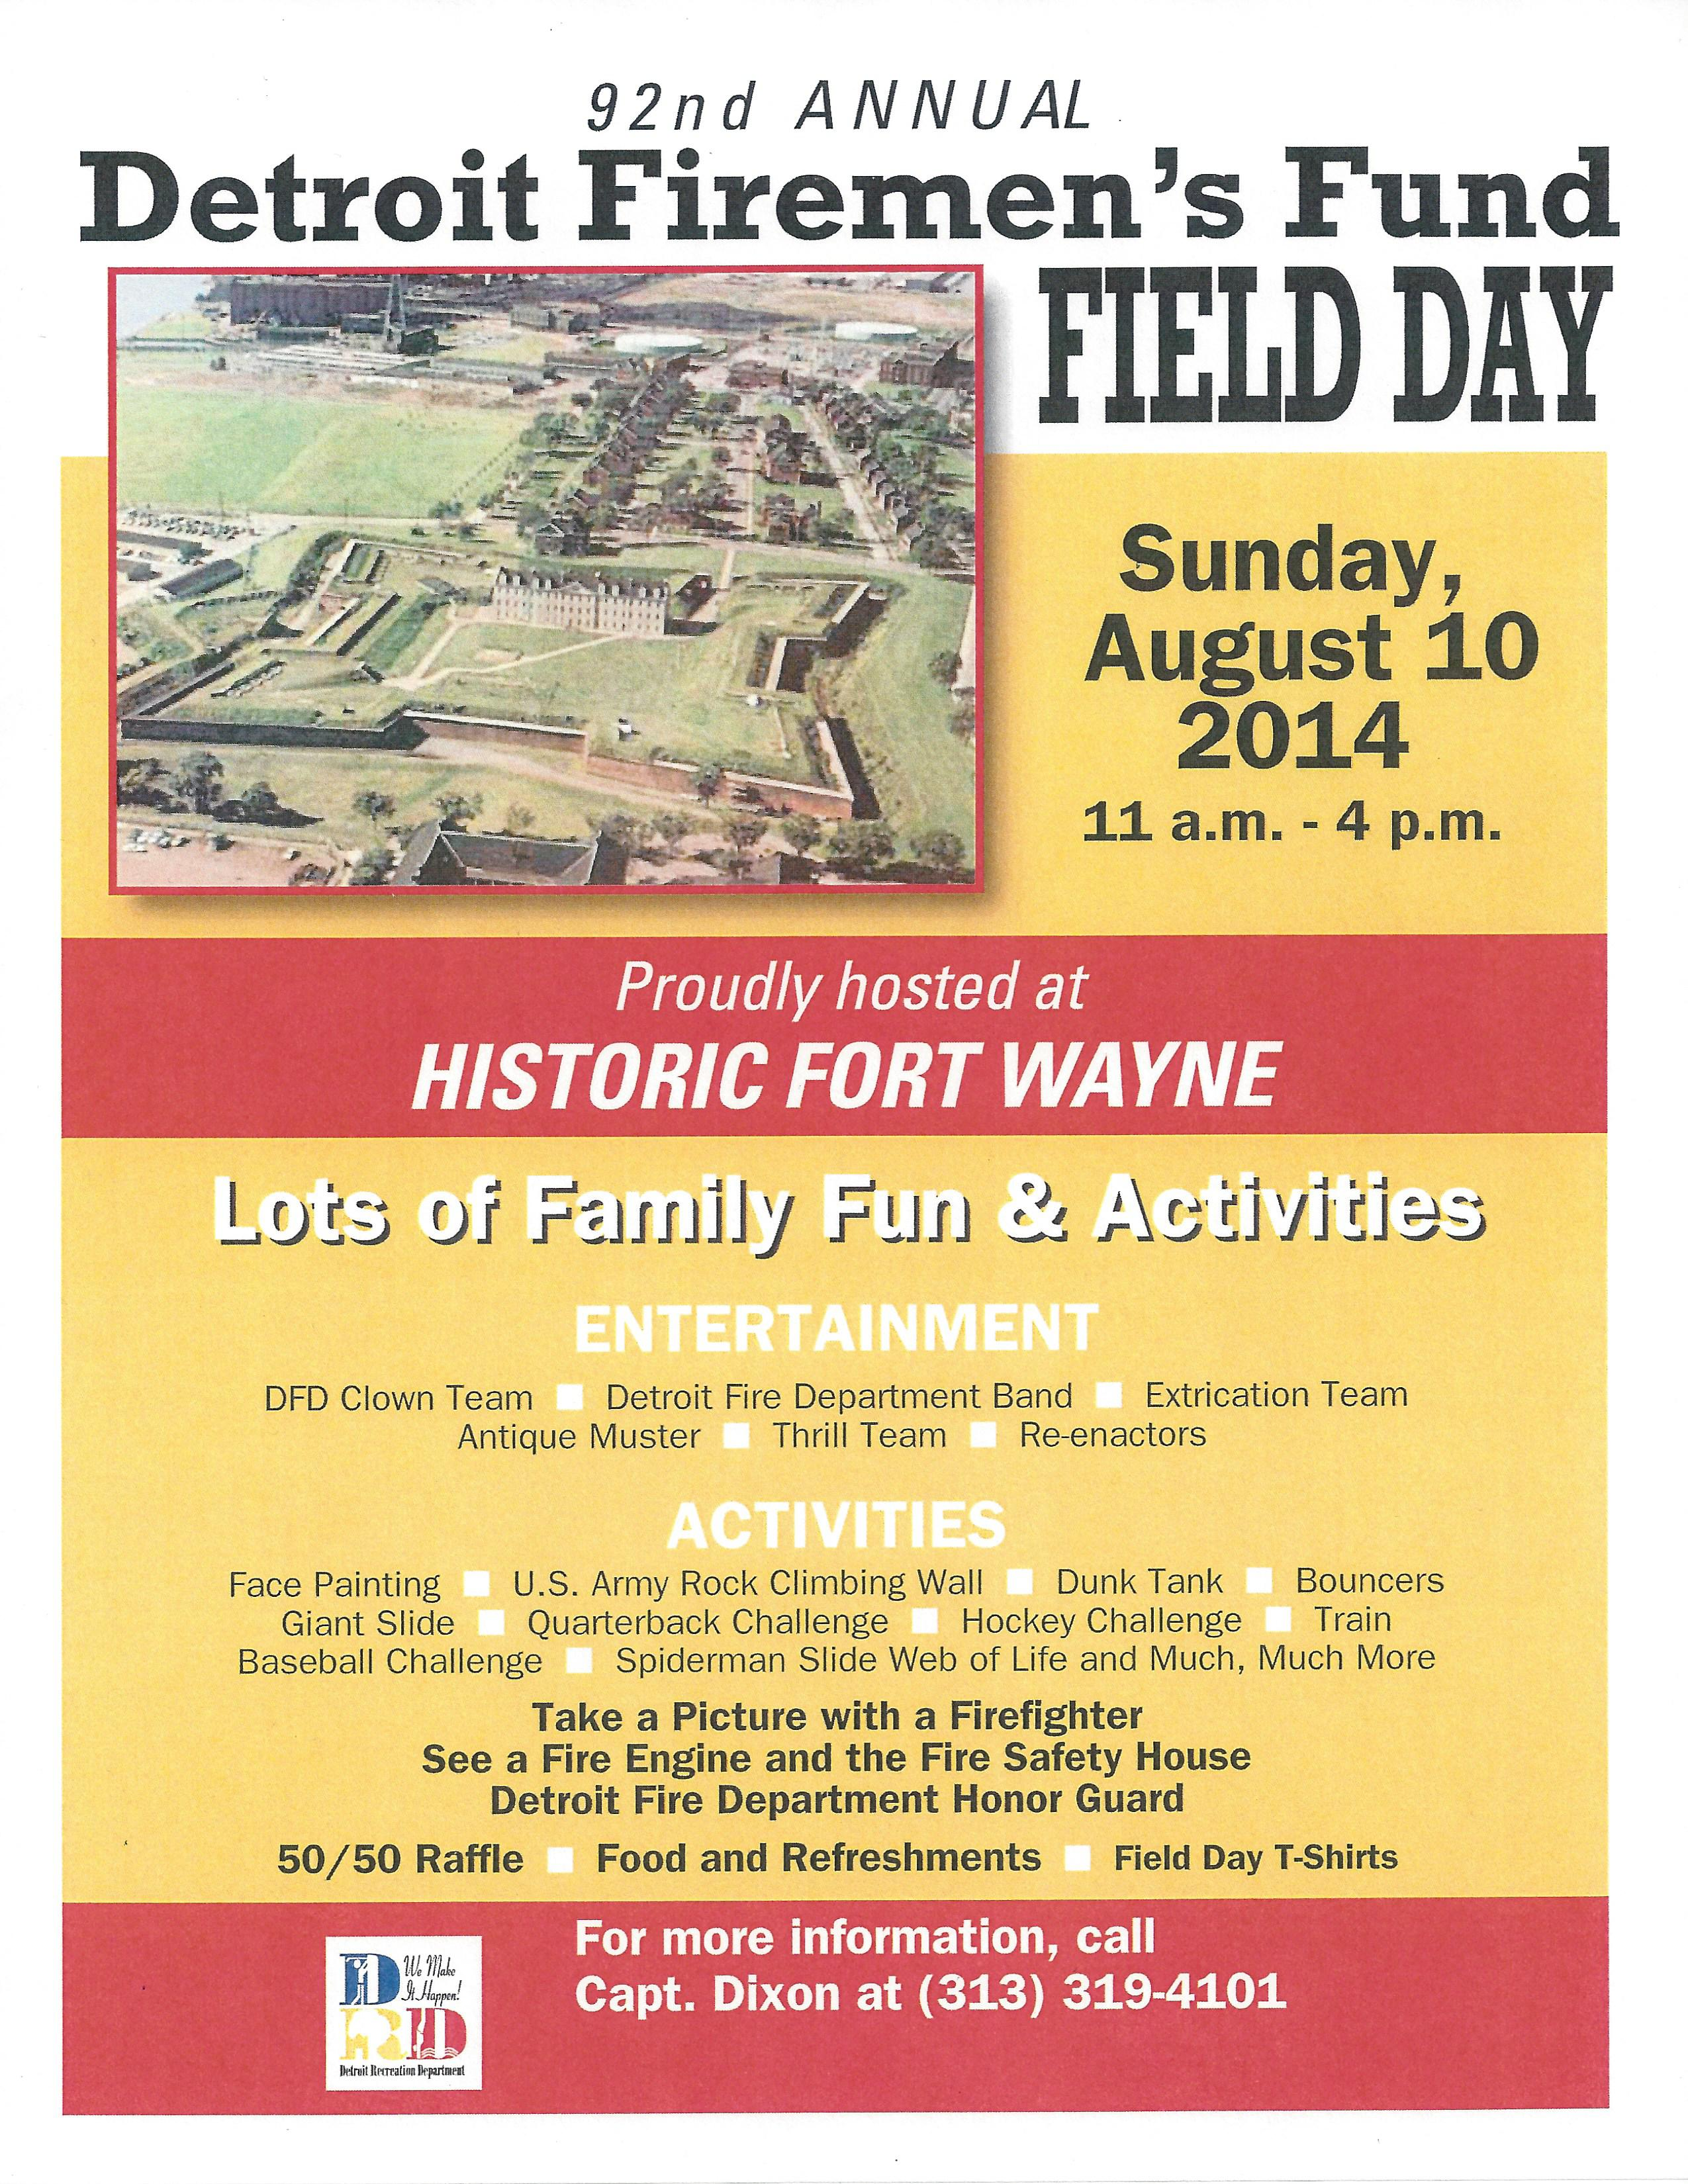 Detoroit Firemen's field day 2014 flyer